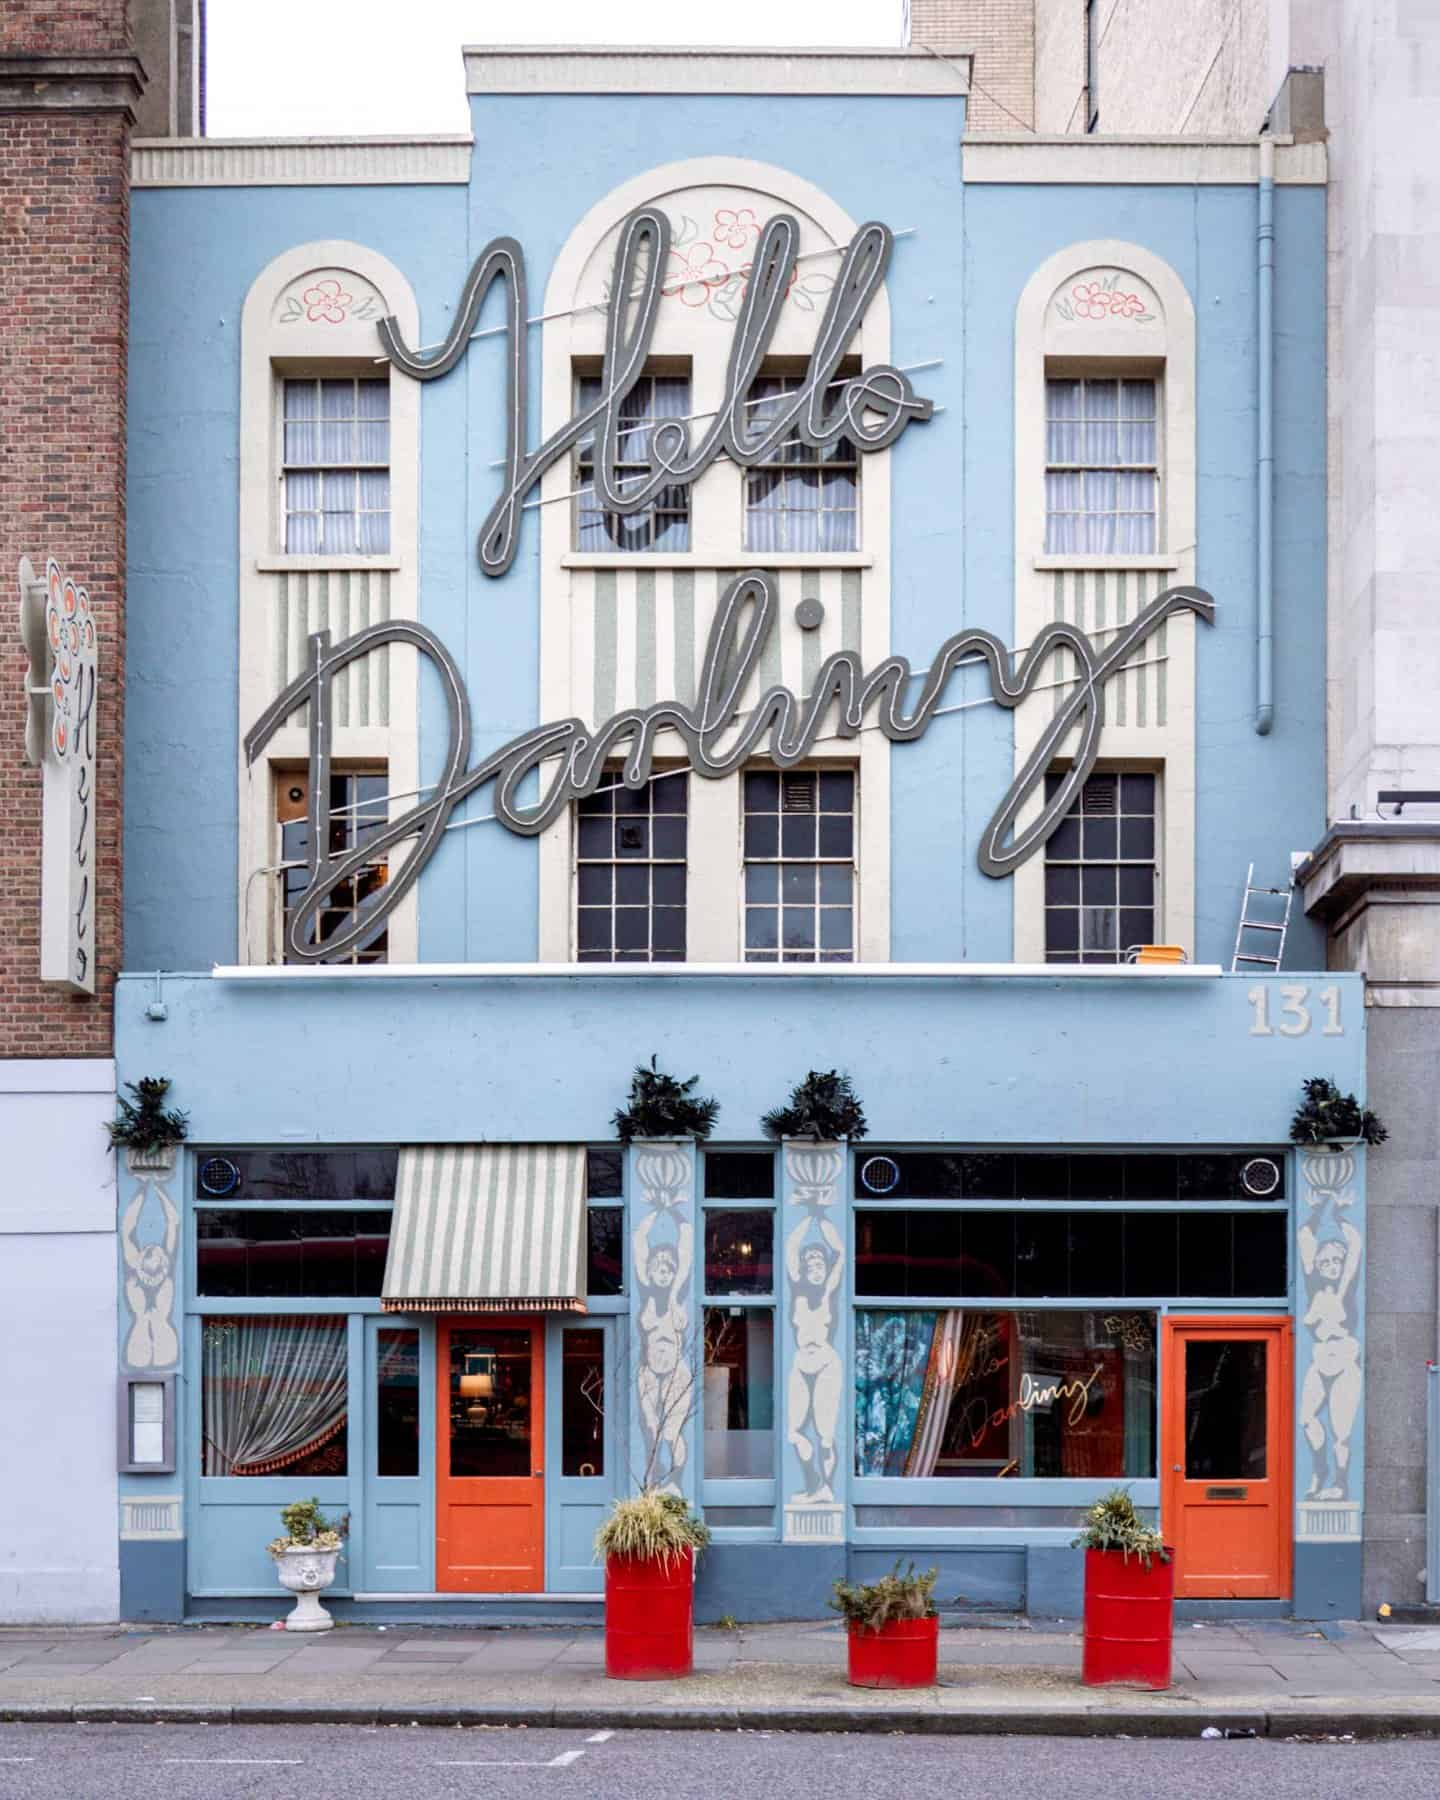 Hello Darling exterior - one of the most instagrammable places in London